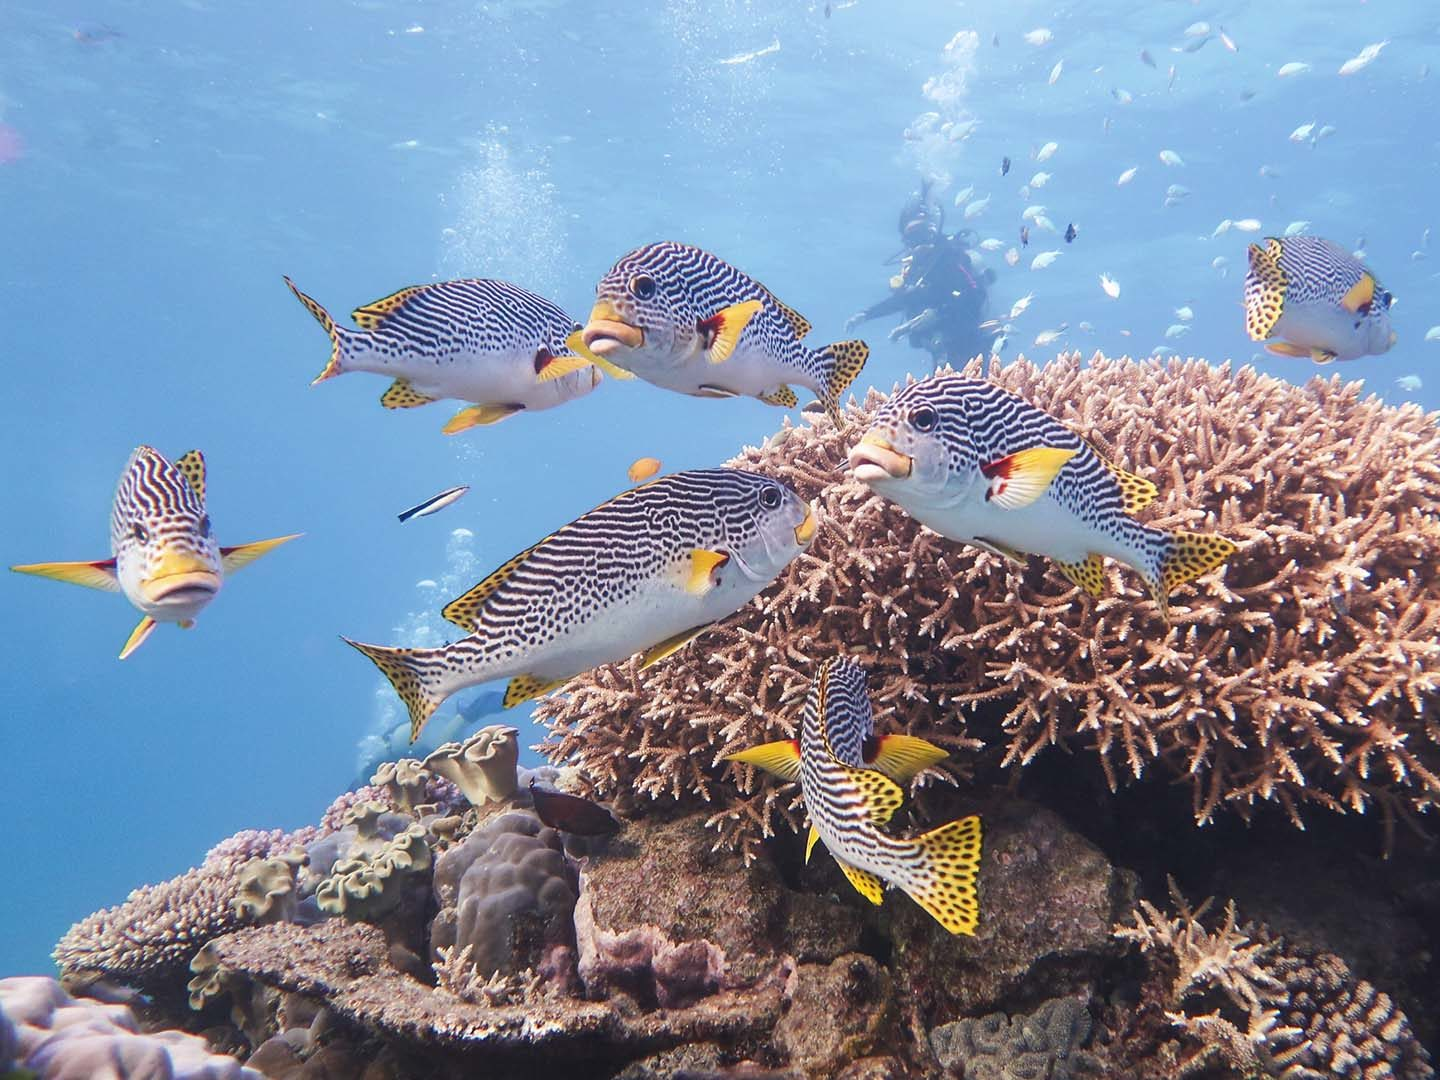 Diving in The Great Barrier Reef. Photo shot with a Canon G7X Mark II Underwater.